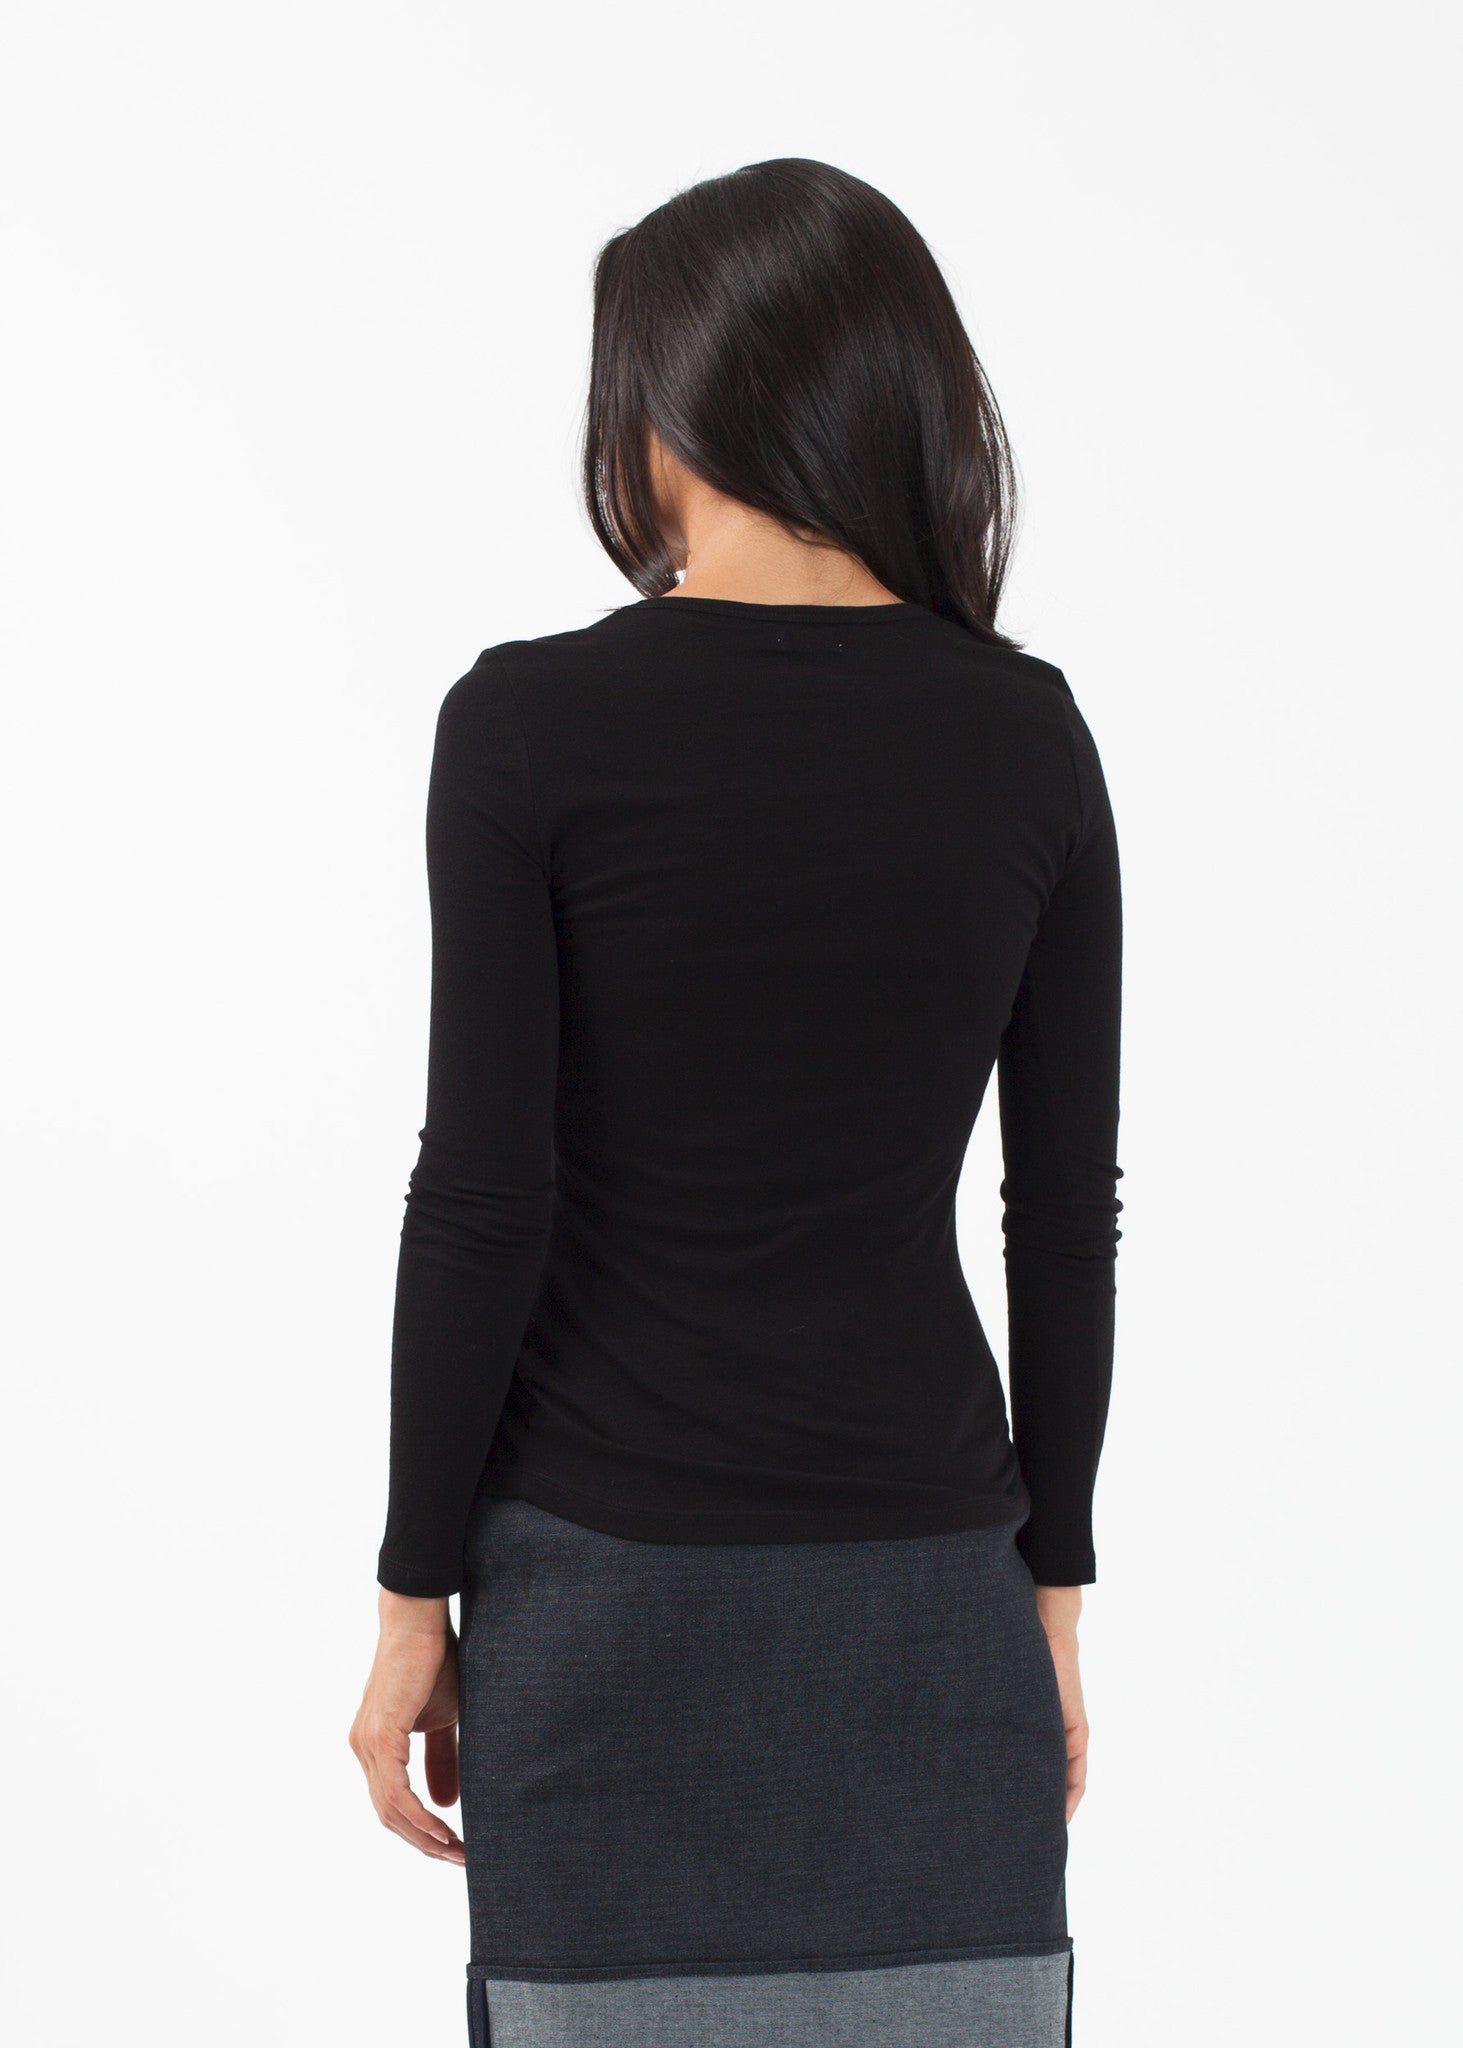 Long Sleeved Tee